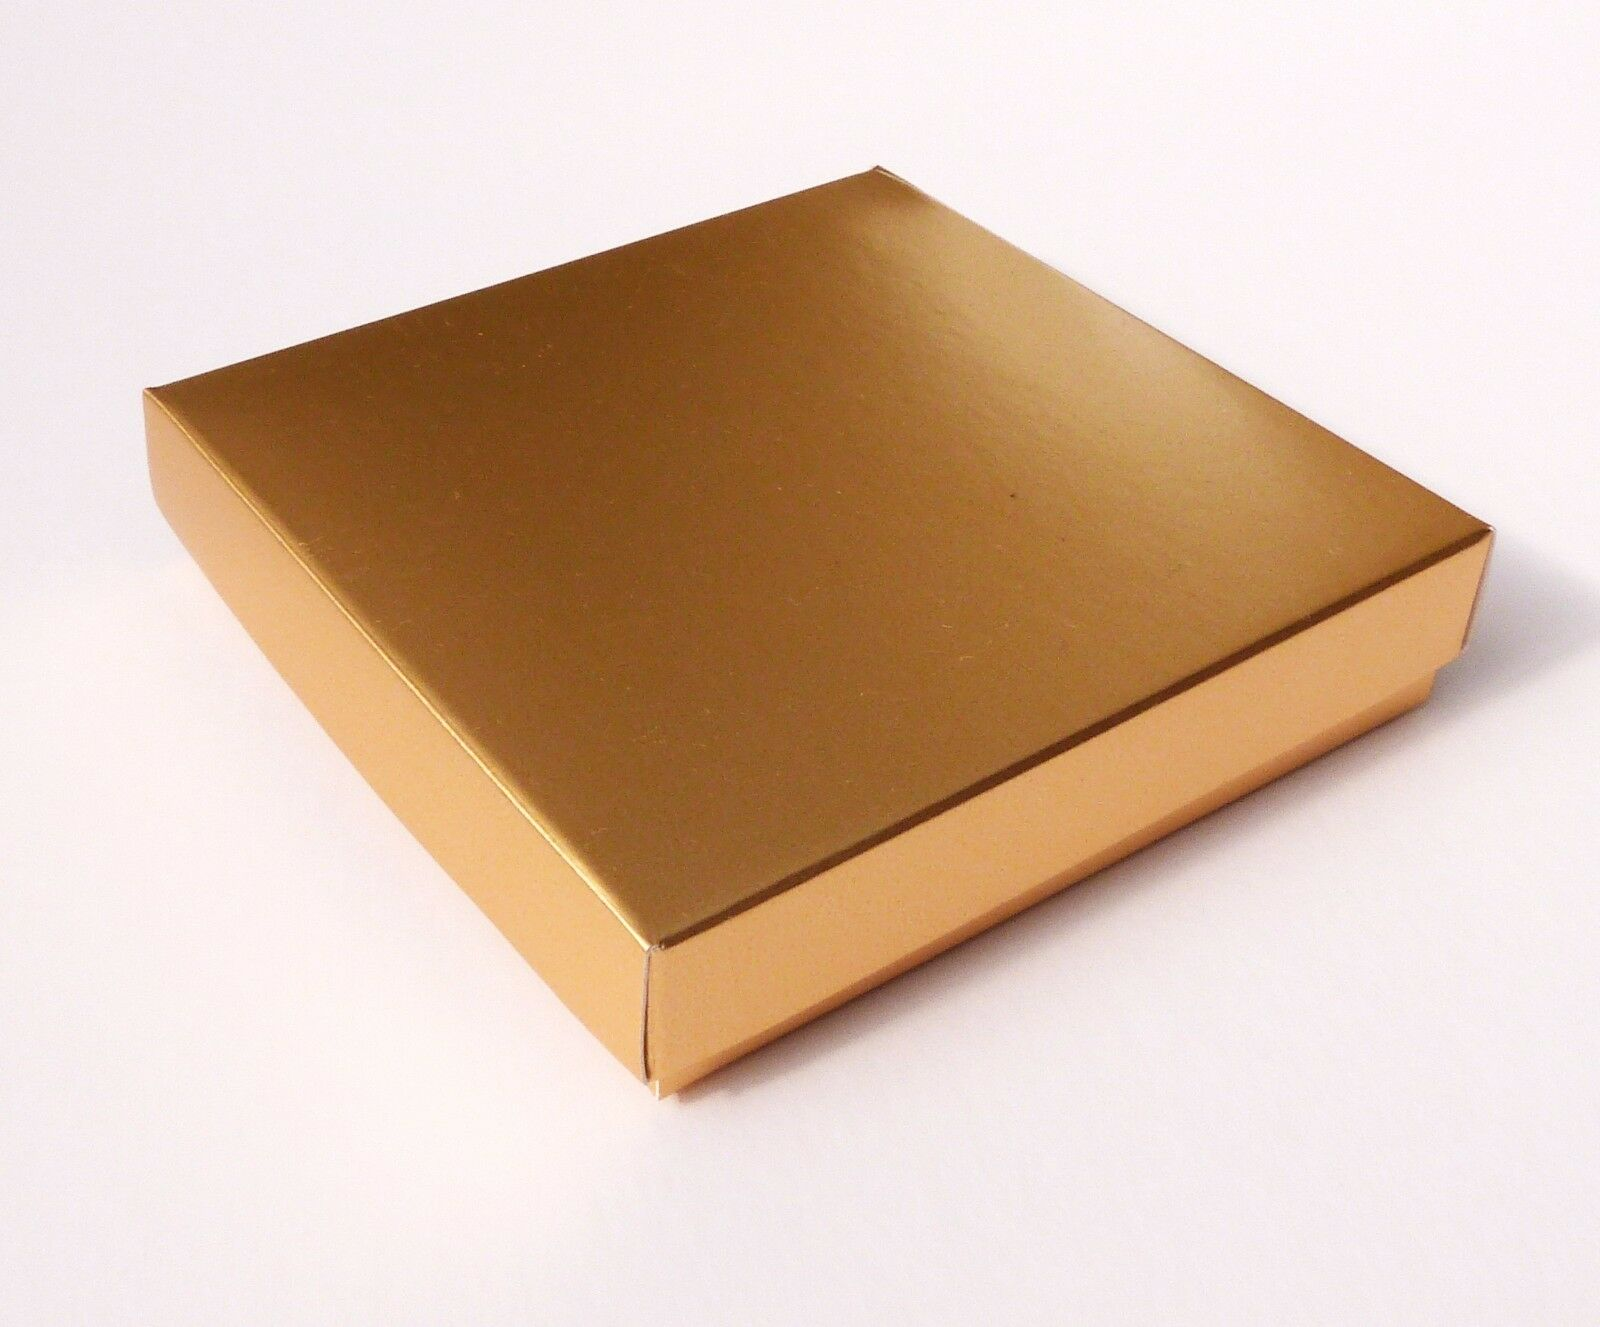 50 gold 4 X 4 INCH BOXES, CARDS, GIFTS, JEWELLERY, CAKES ETC